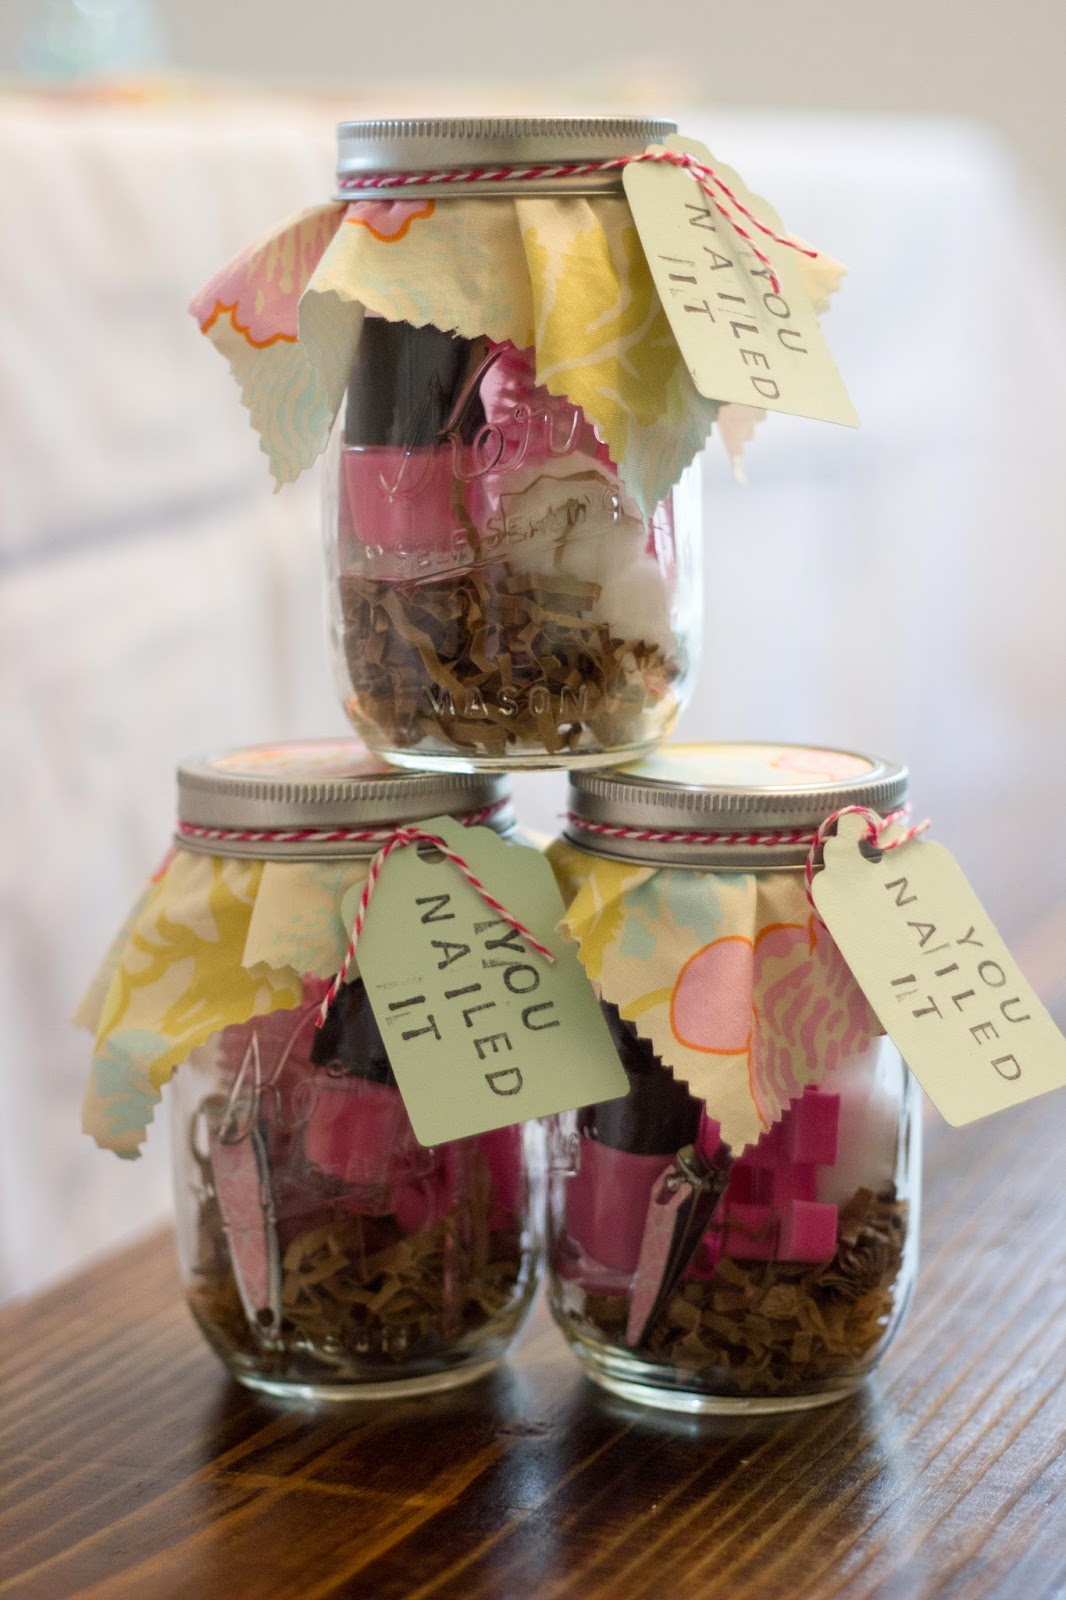 25 popular baby shower prizes - that won't get tossed in the garbage!